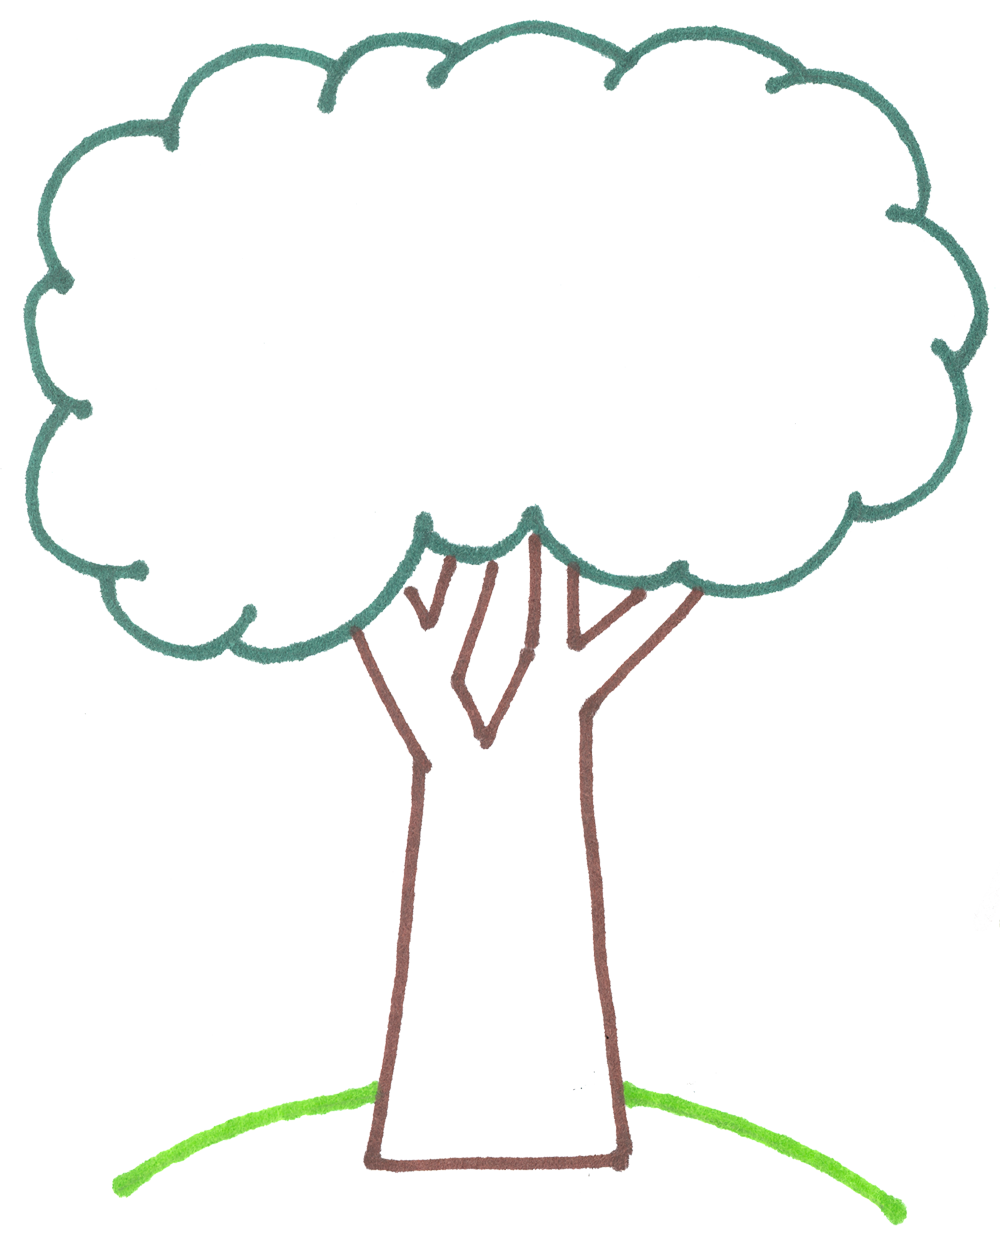 Lake clipart trees. A perfect world clip